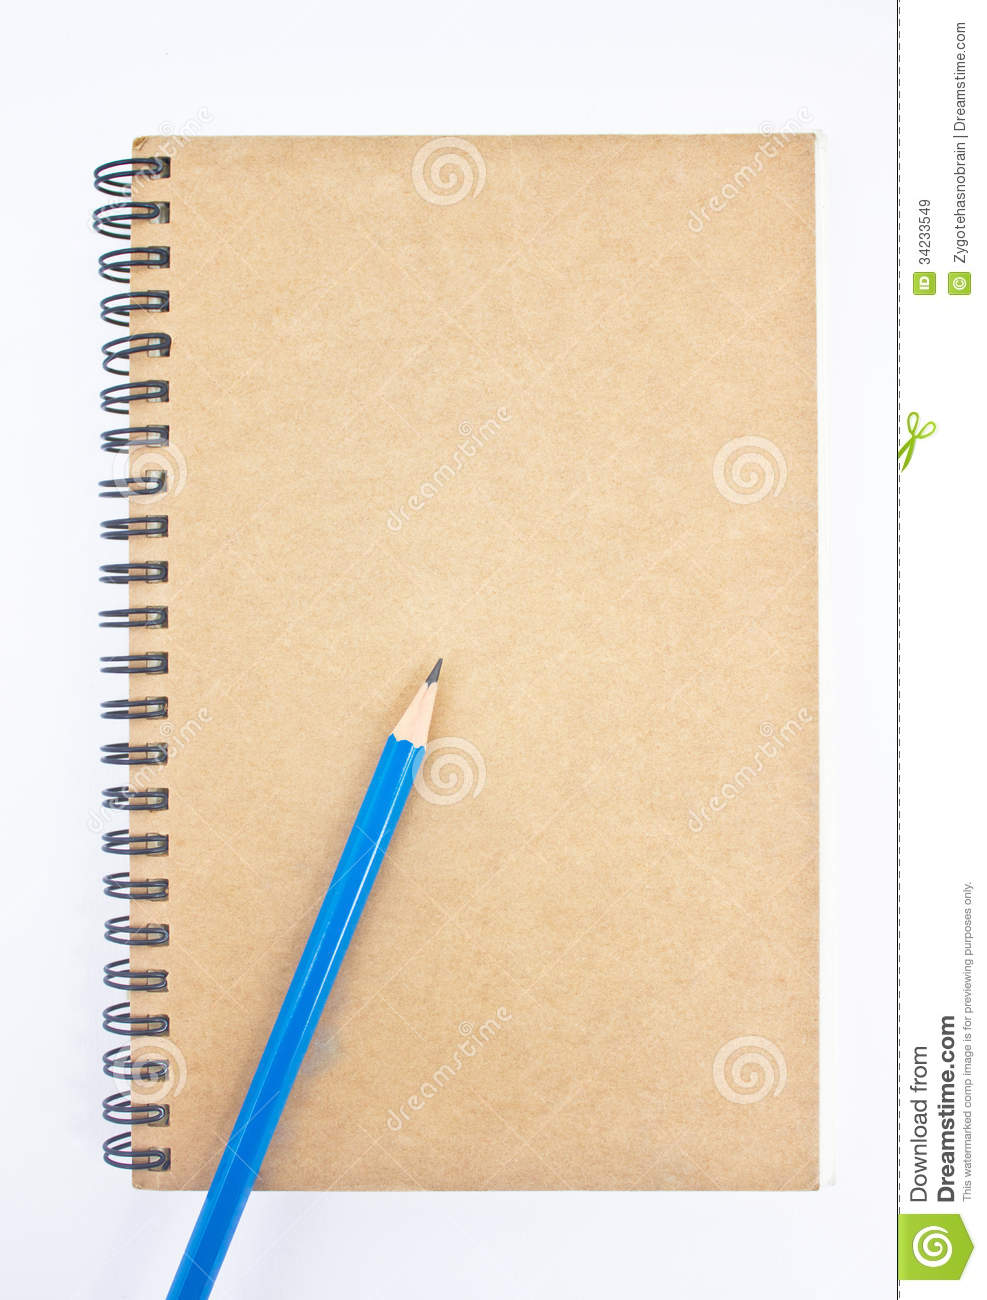 Notebook Cover Background : Blue pencil on brown notebook s cover royalty free stock